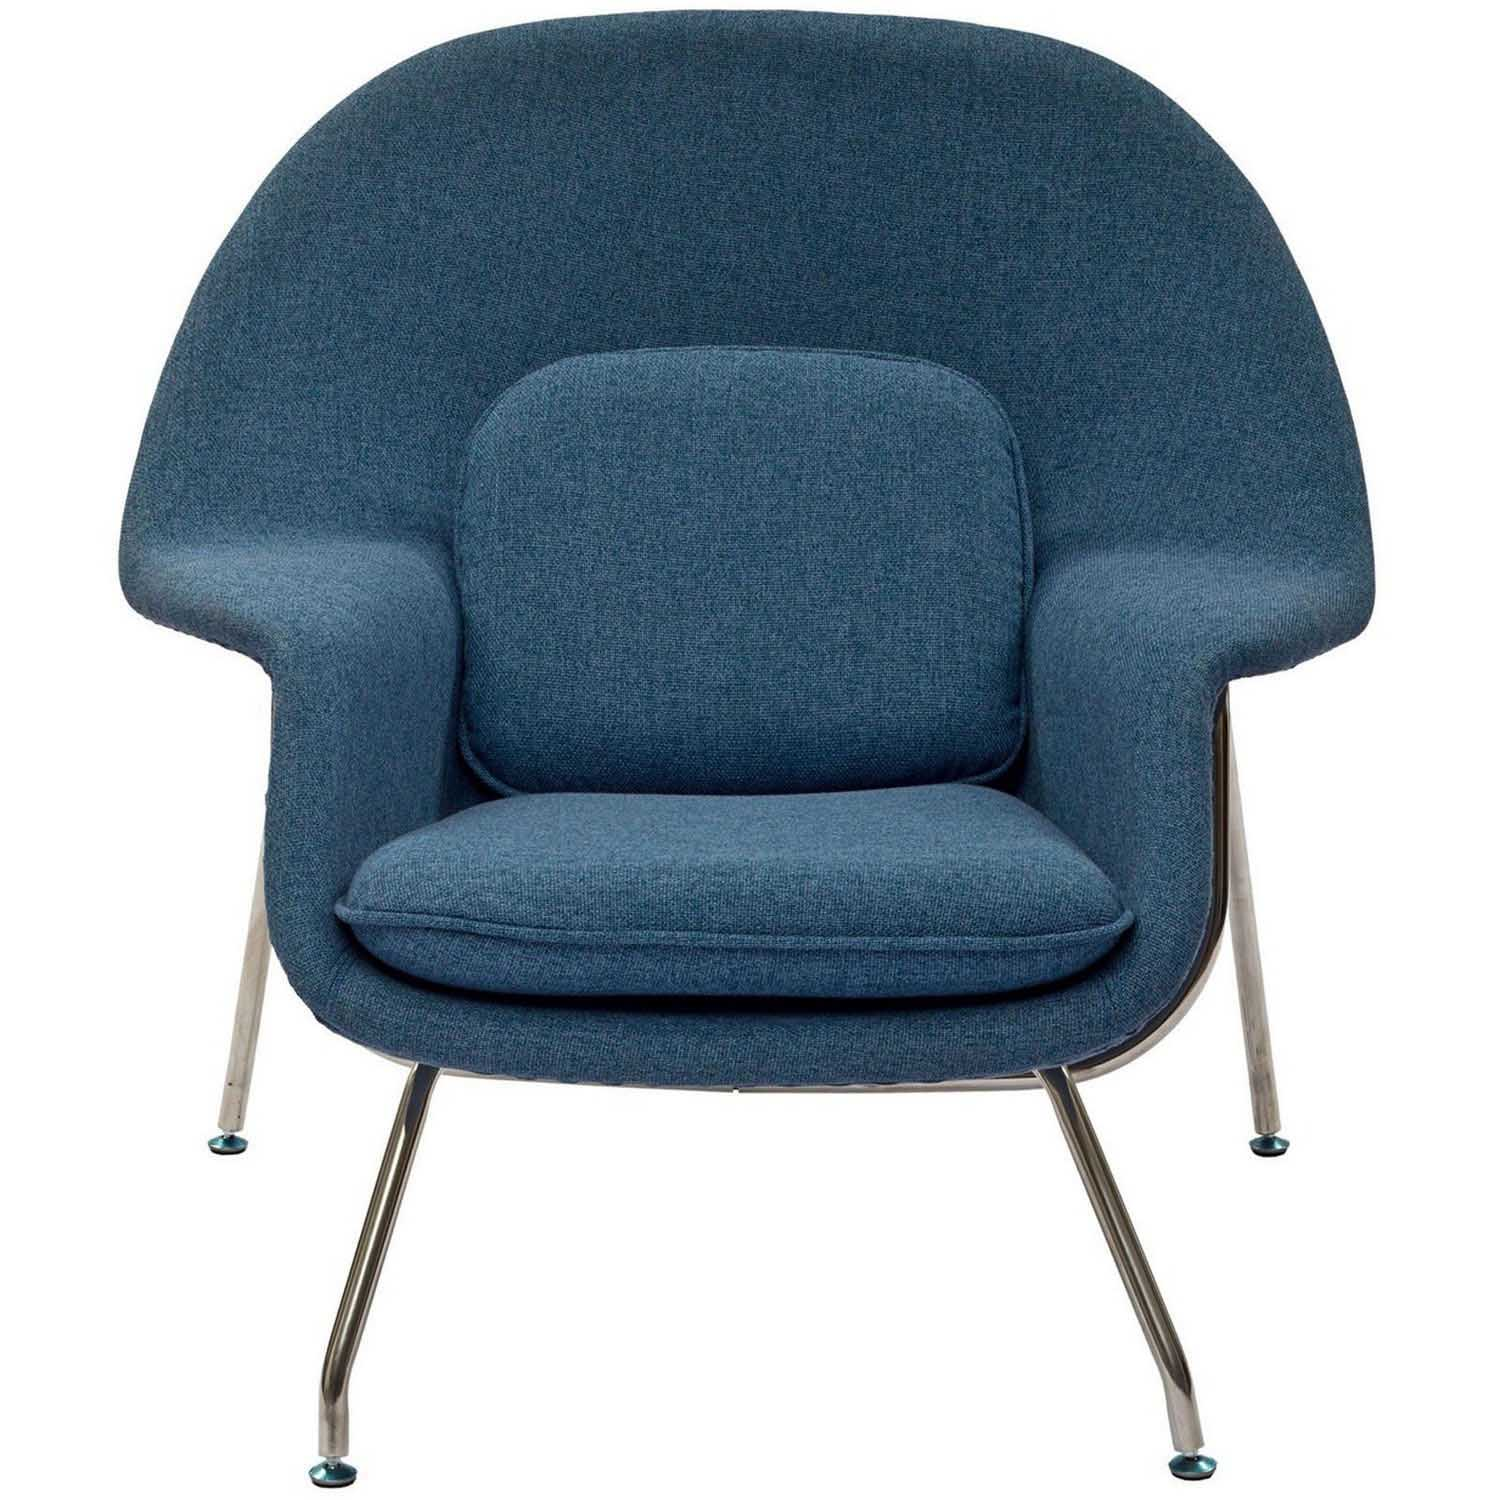 Modway W Fabric Lounge Chair - Blue Tweed